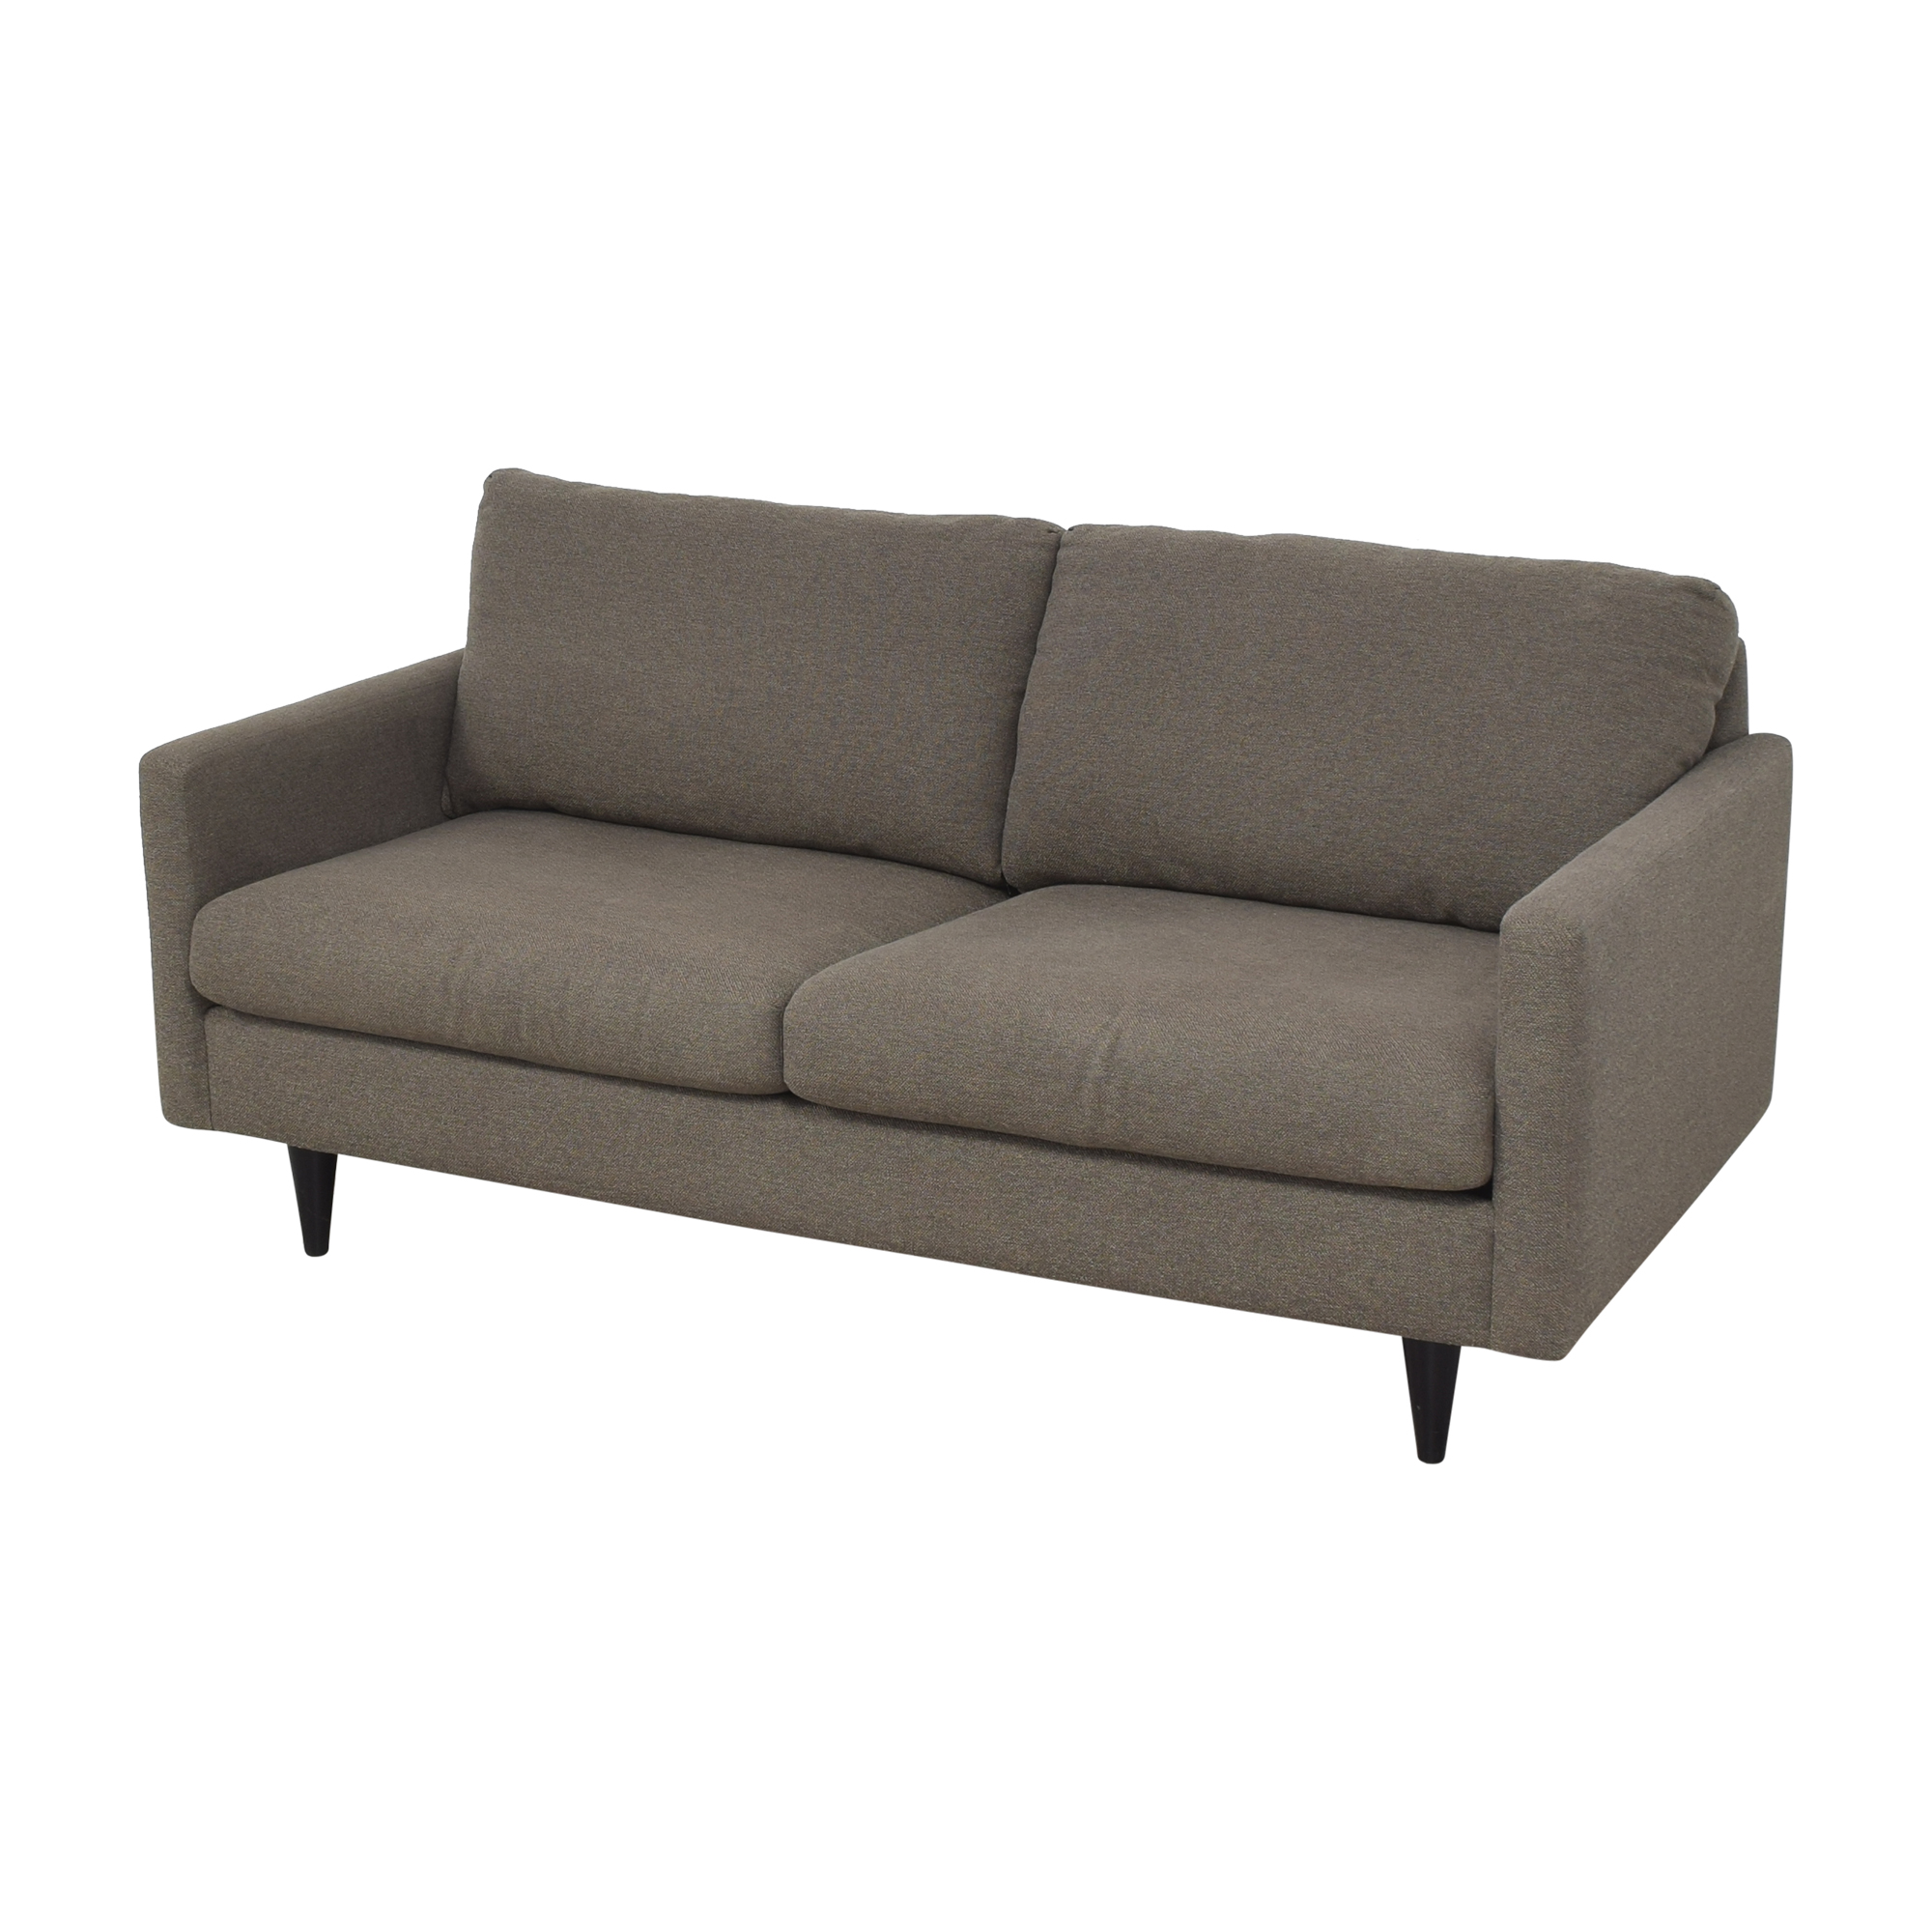 Younger Furniture Younger Furniture Lenny Apartment Sofa brown